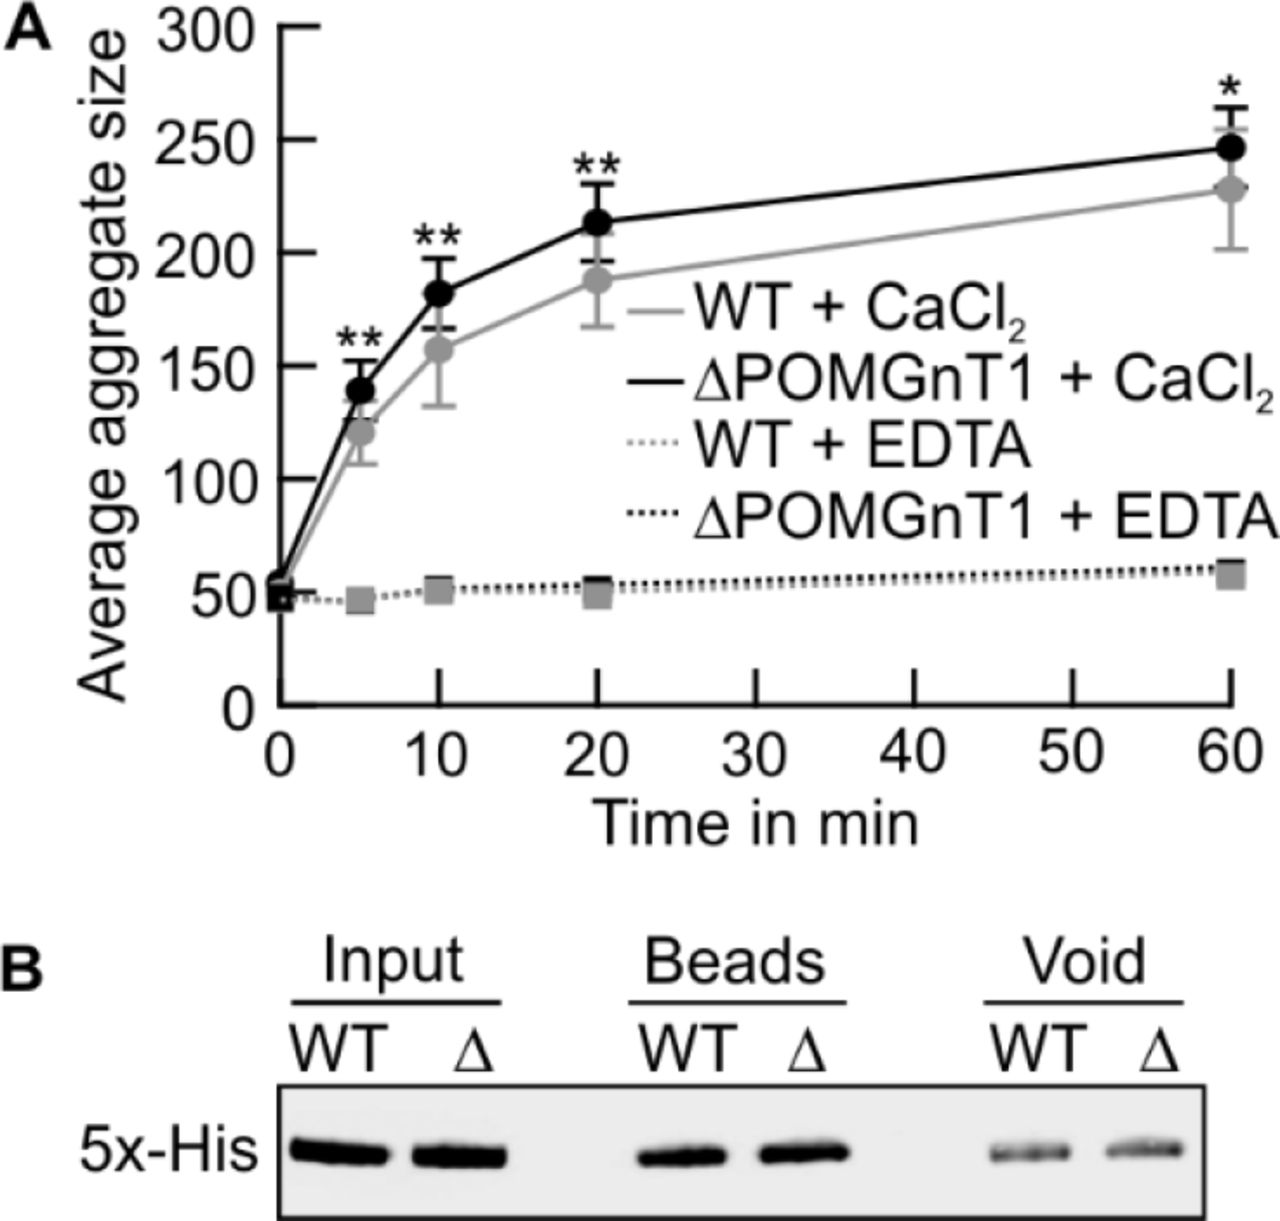 N-Cadherin from POMGNT1-deficient cells shows enhanced homotypic interactions in vitro . (A) Semi-quantitative analysis of the mean size of dynabead aggregates coated with the recombinant extracellular domain of recombinant N-Cdh purified from WT (gray line) and ΔPOMGnT1 cells (black line). Protein-coated dynabeads were imaged following incubation in the presence of either CaCl 2 (solid lines) or EDTA (broken lines) at the indicated time intervals. Mean aggregate size is plotted against time. Assays were performed at quadruplicate from two independent experiments. Data are represented as means ± SD. Asterisks denote statistical significance in comparison to WT cells: * p ≤ 0.05, ** p ≤ 0.01. (B) Western Blot analysis evaluating levels of protein from WT and ΔPOMGnT1 (Δ) bound to dynabeads. Dynabead-bound recombinant N-Cdh was eluted in SDS sample buffer (beads), resolved on a 10% SDS PAA gel. For detection on Western blot an anti-5xHis antibody was used. In addition, protein before binding to beads (input) and unbound fractions (void) are shown.